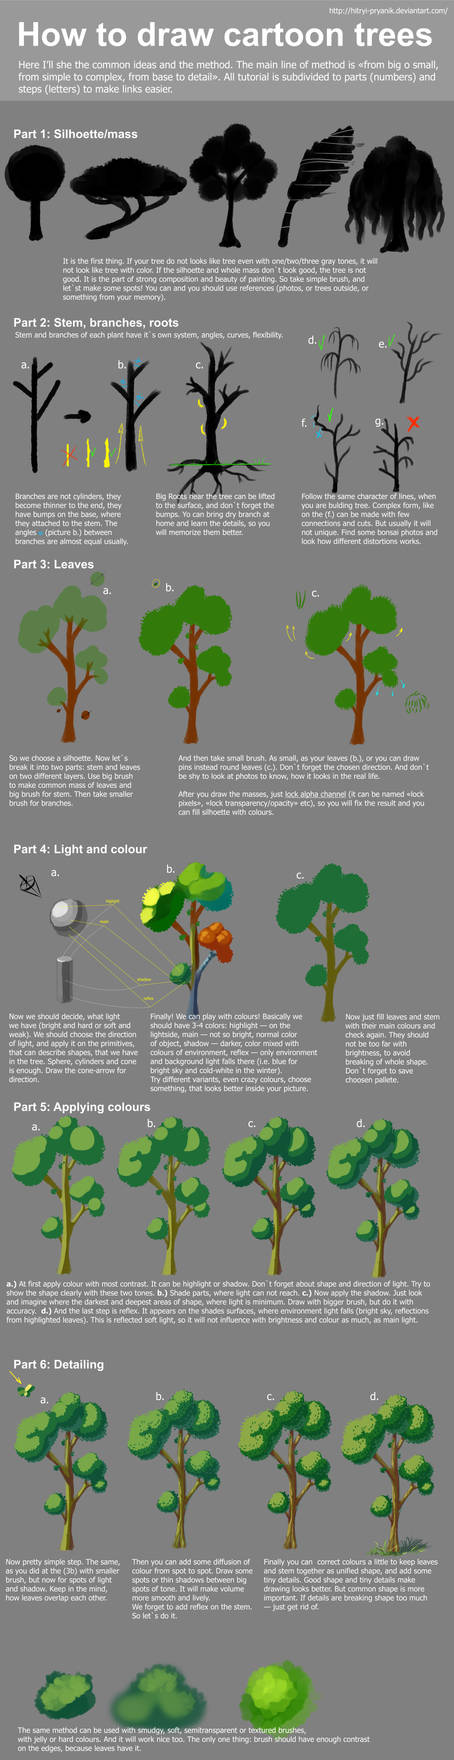 Cartoon Tree How To Draw A Tree Easy – In today's drawing lesson, we will show you how to draw a tree for beginners.